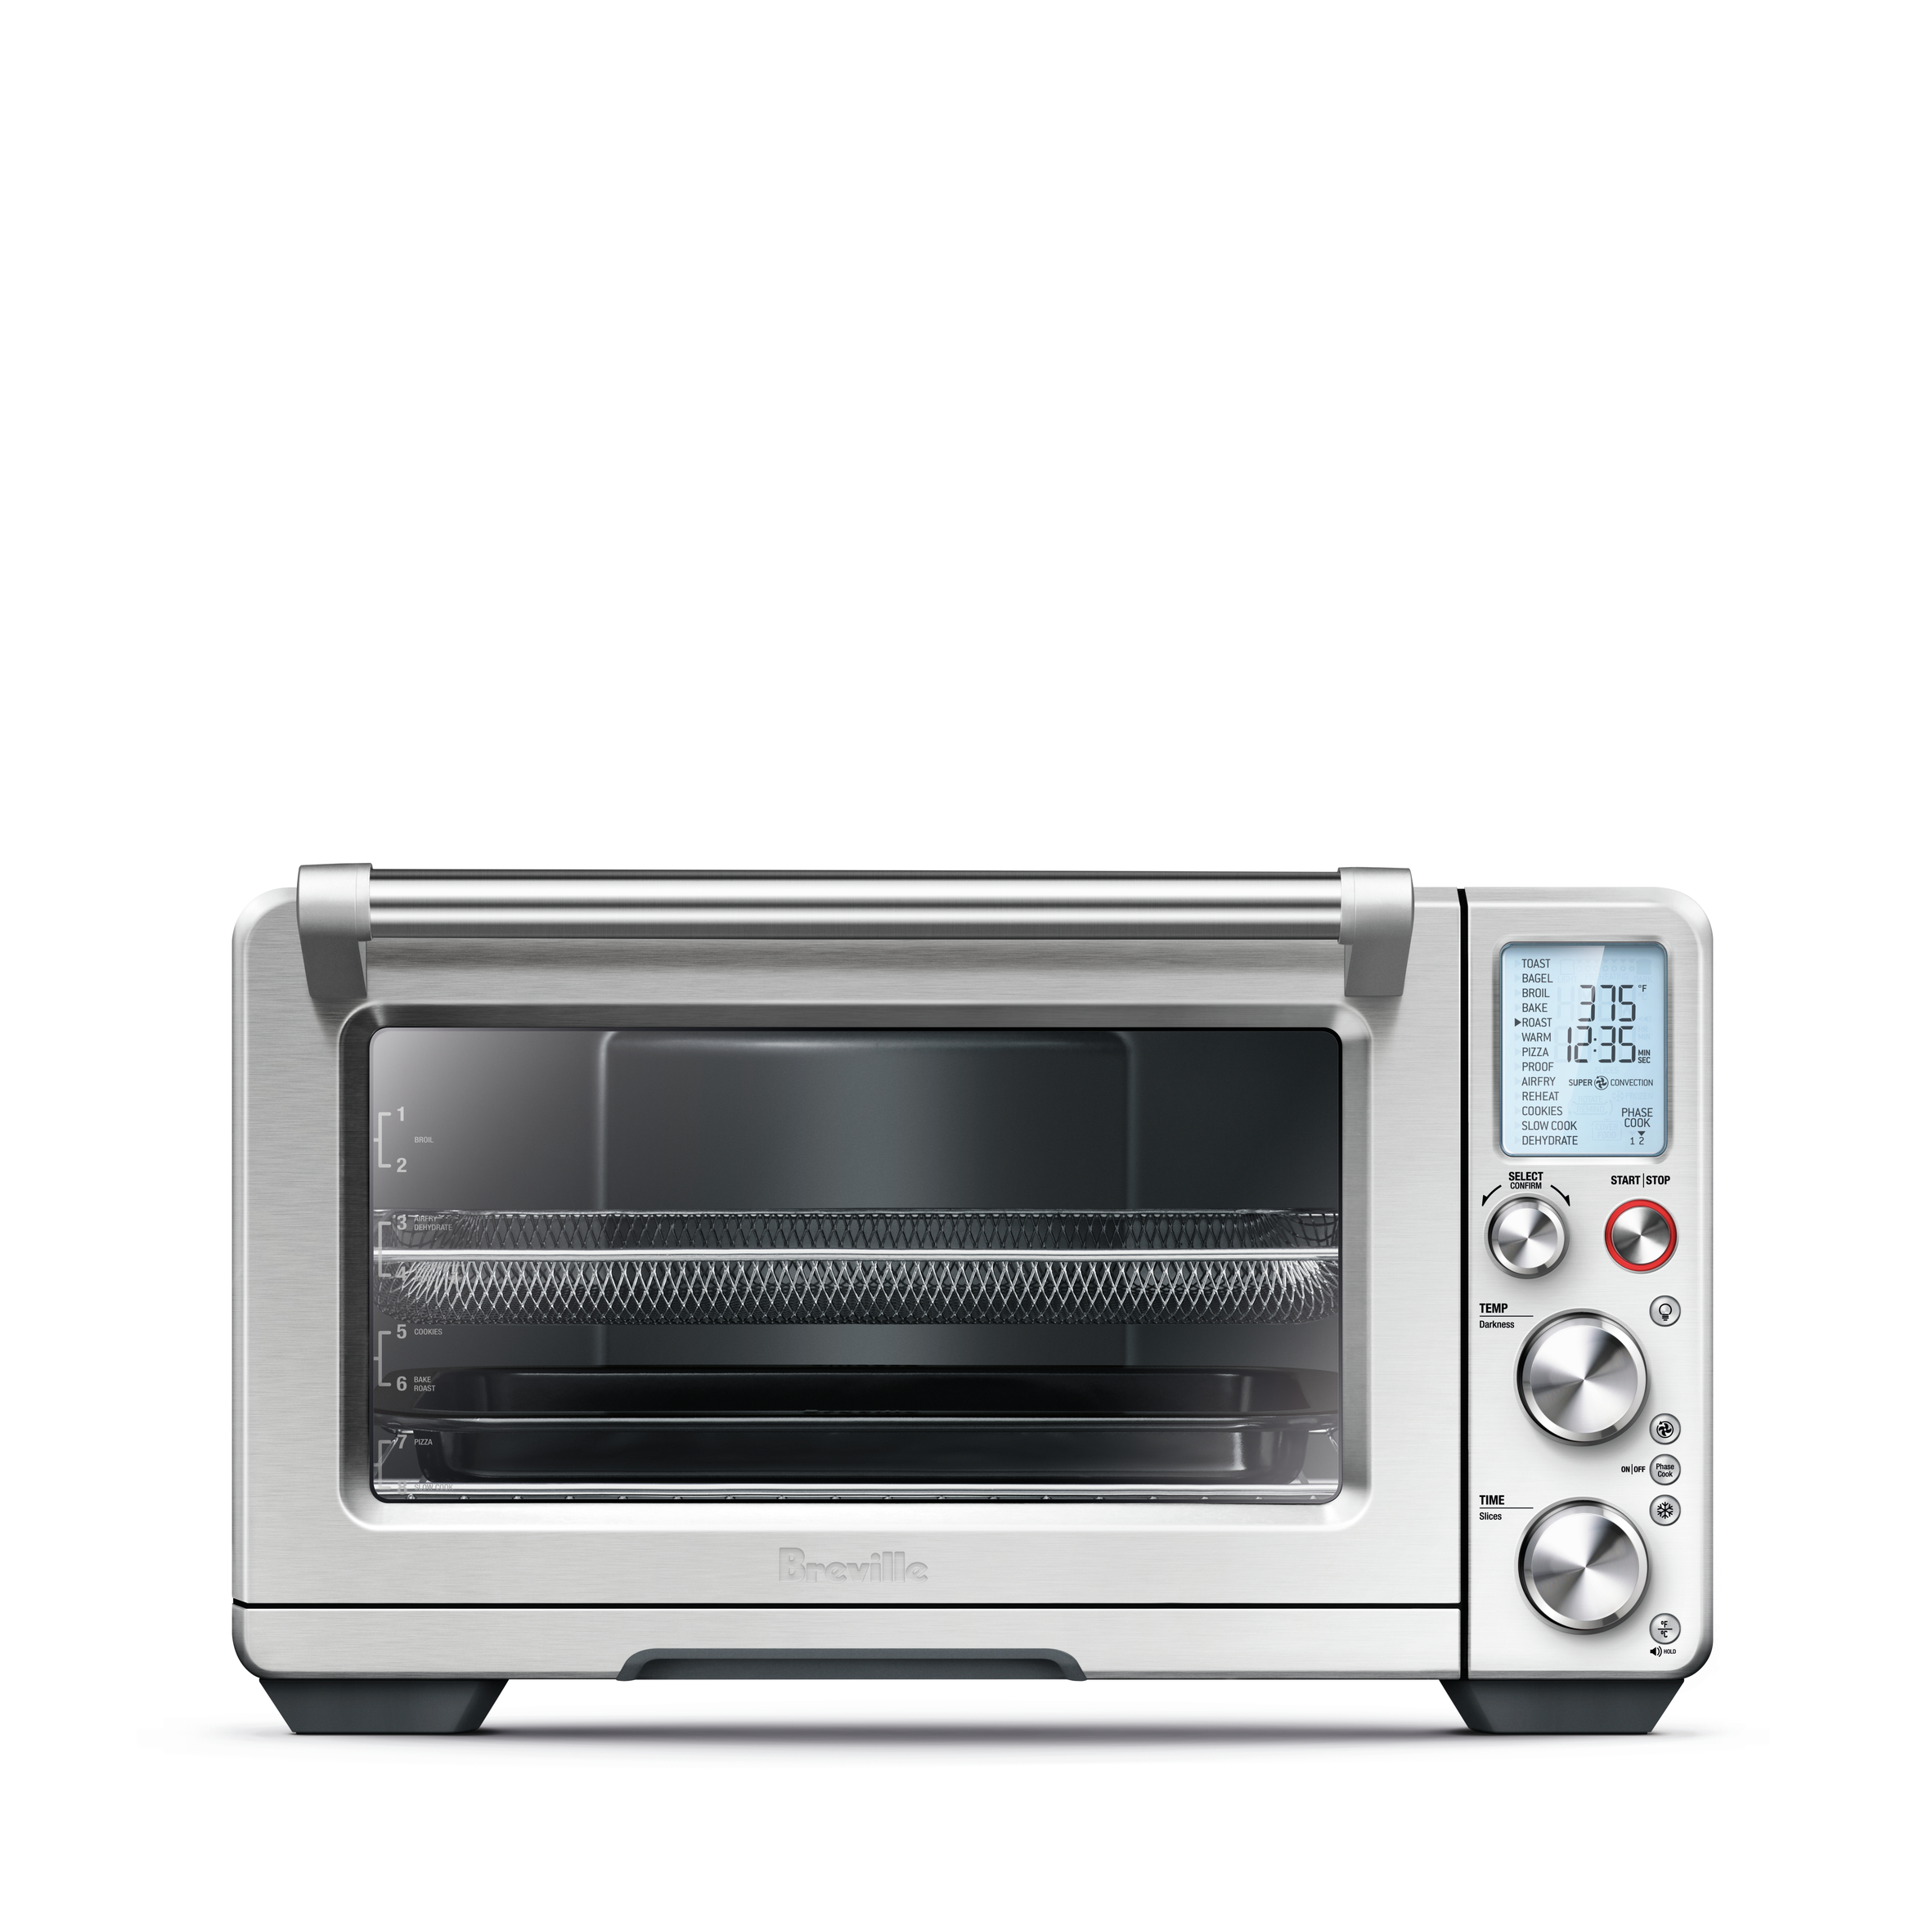 samsung smart with convection oven litres toaster sensor mwo